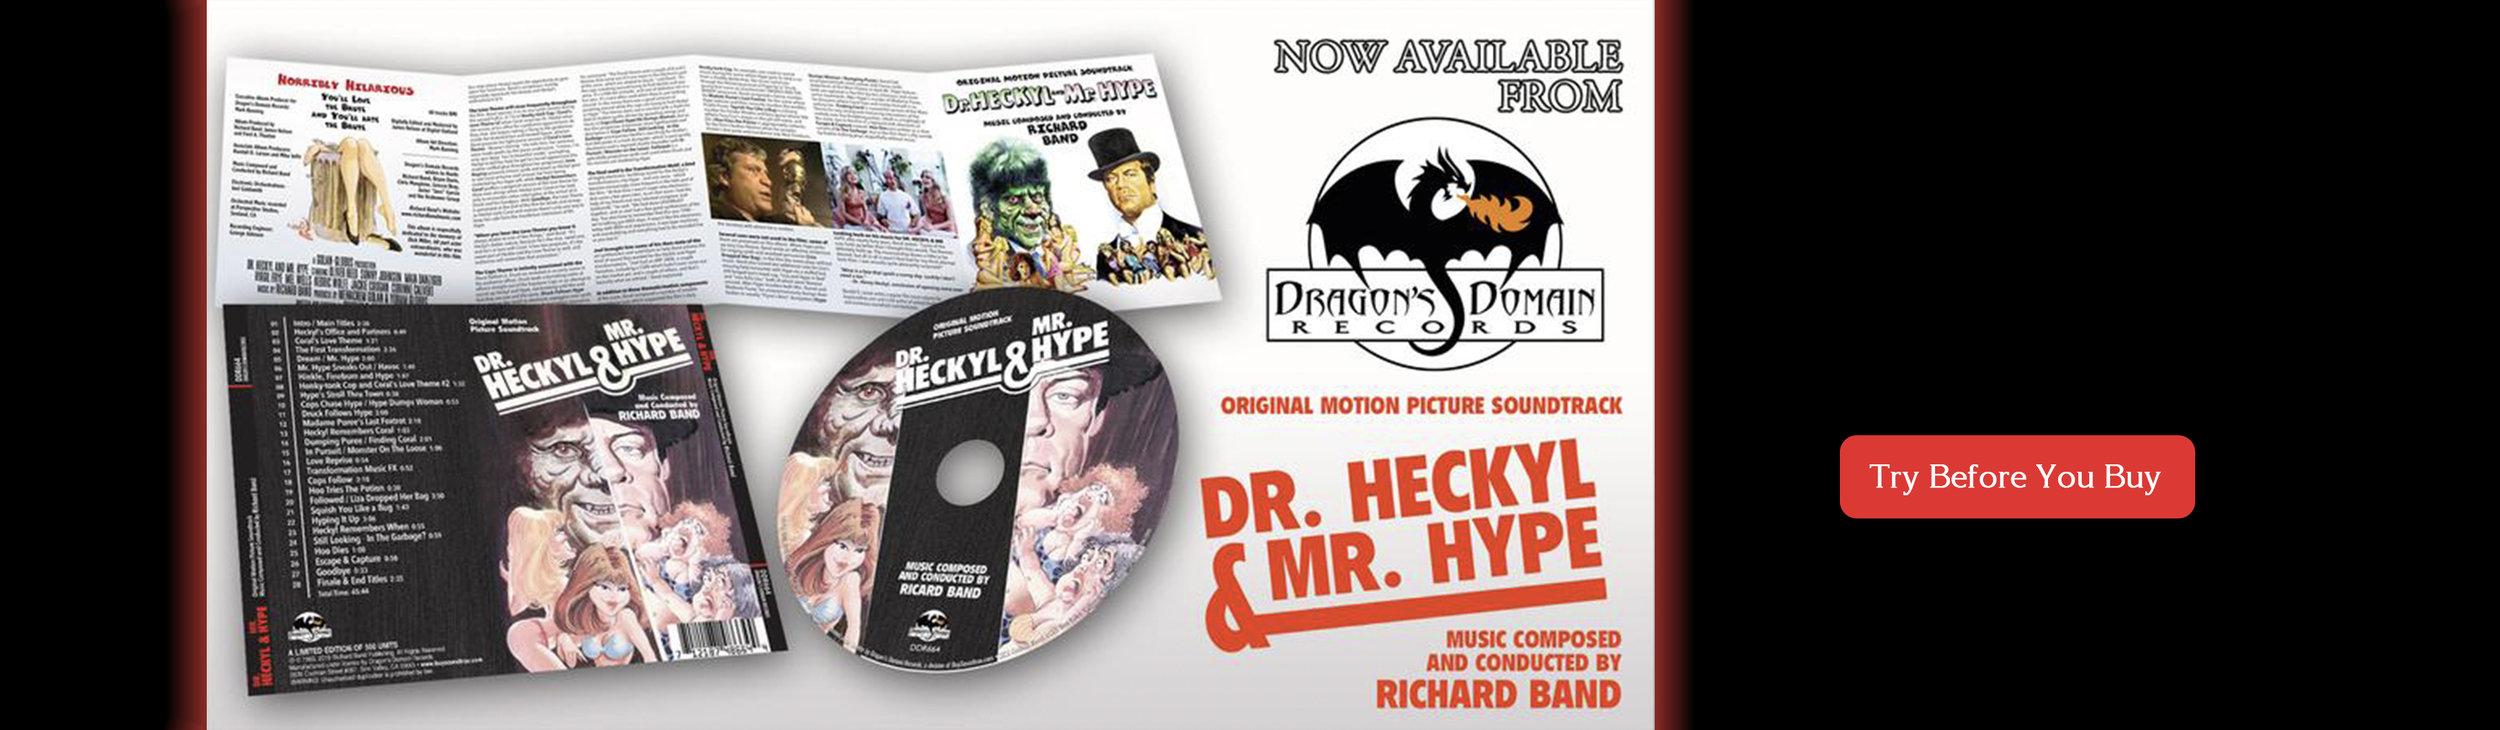 Listen to Dr. Heckly & Mr. Hype before You Buy It!